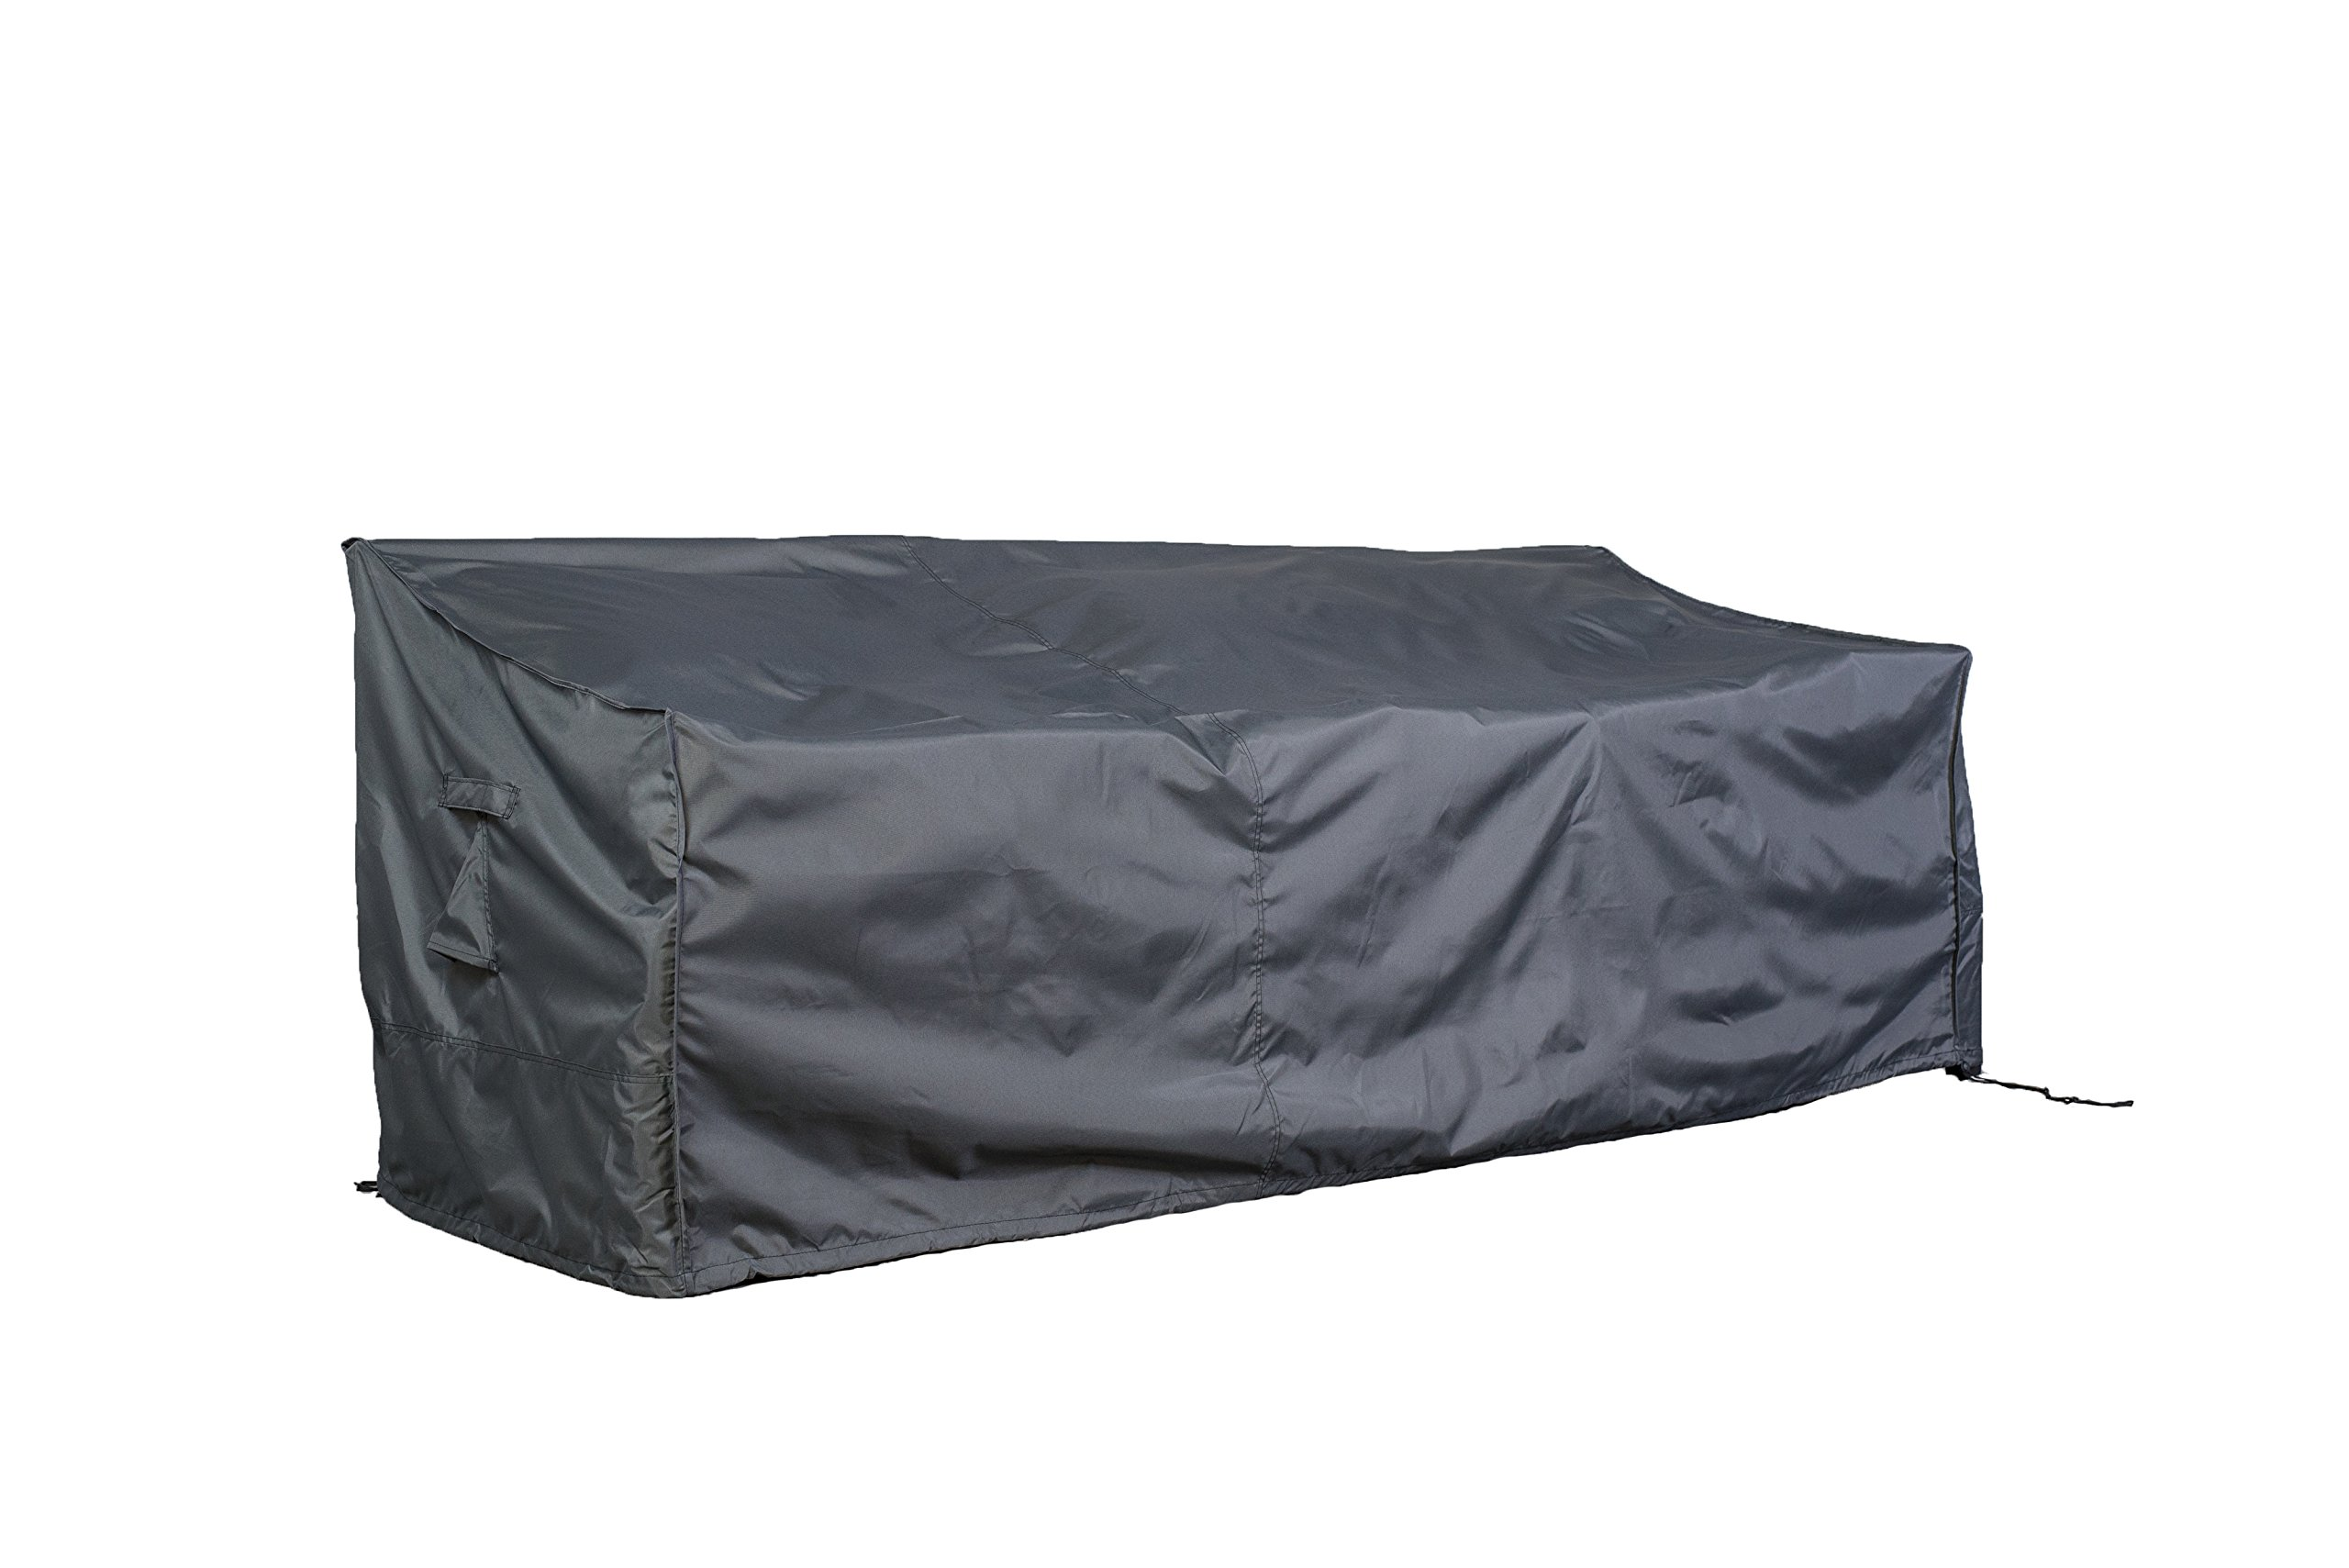 Hentex Cover Outdoor Loveseat Sofa Cover, 6607, Water Resistant, Breathable, Advanced 3 Layer Fabric (88'×'32.5''×33'')